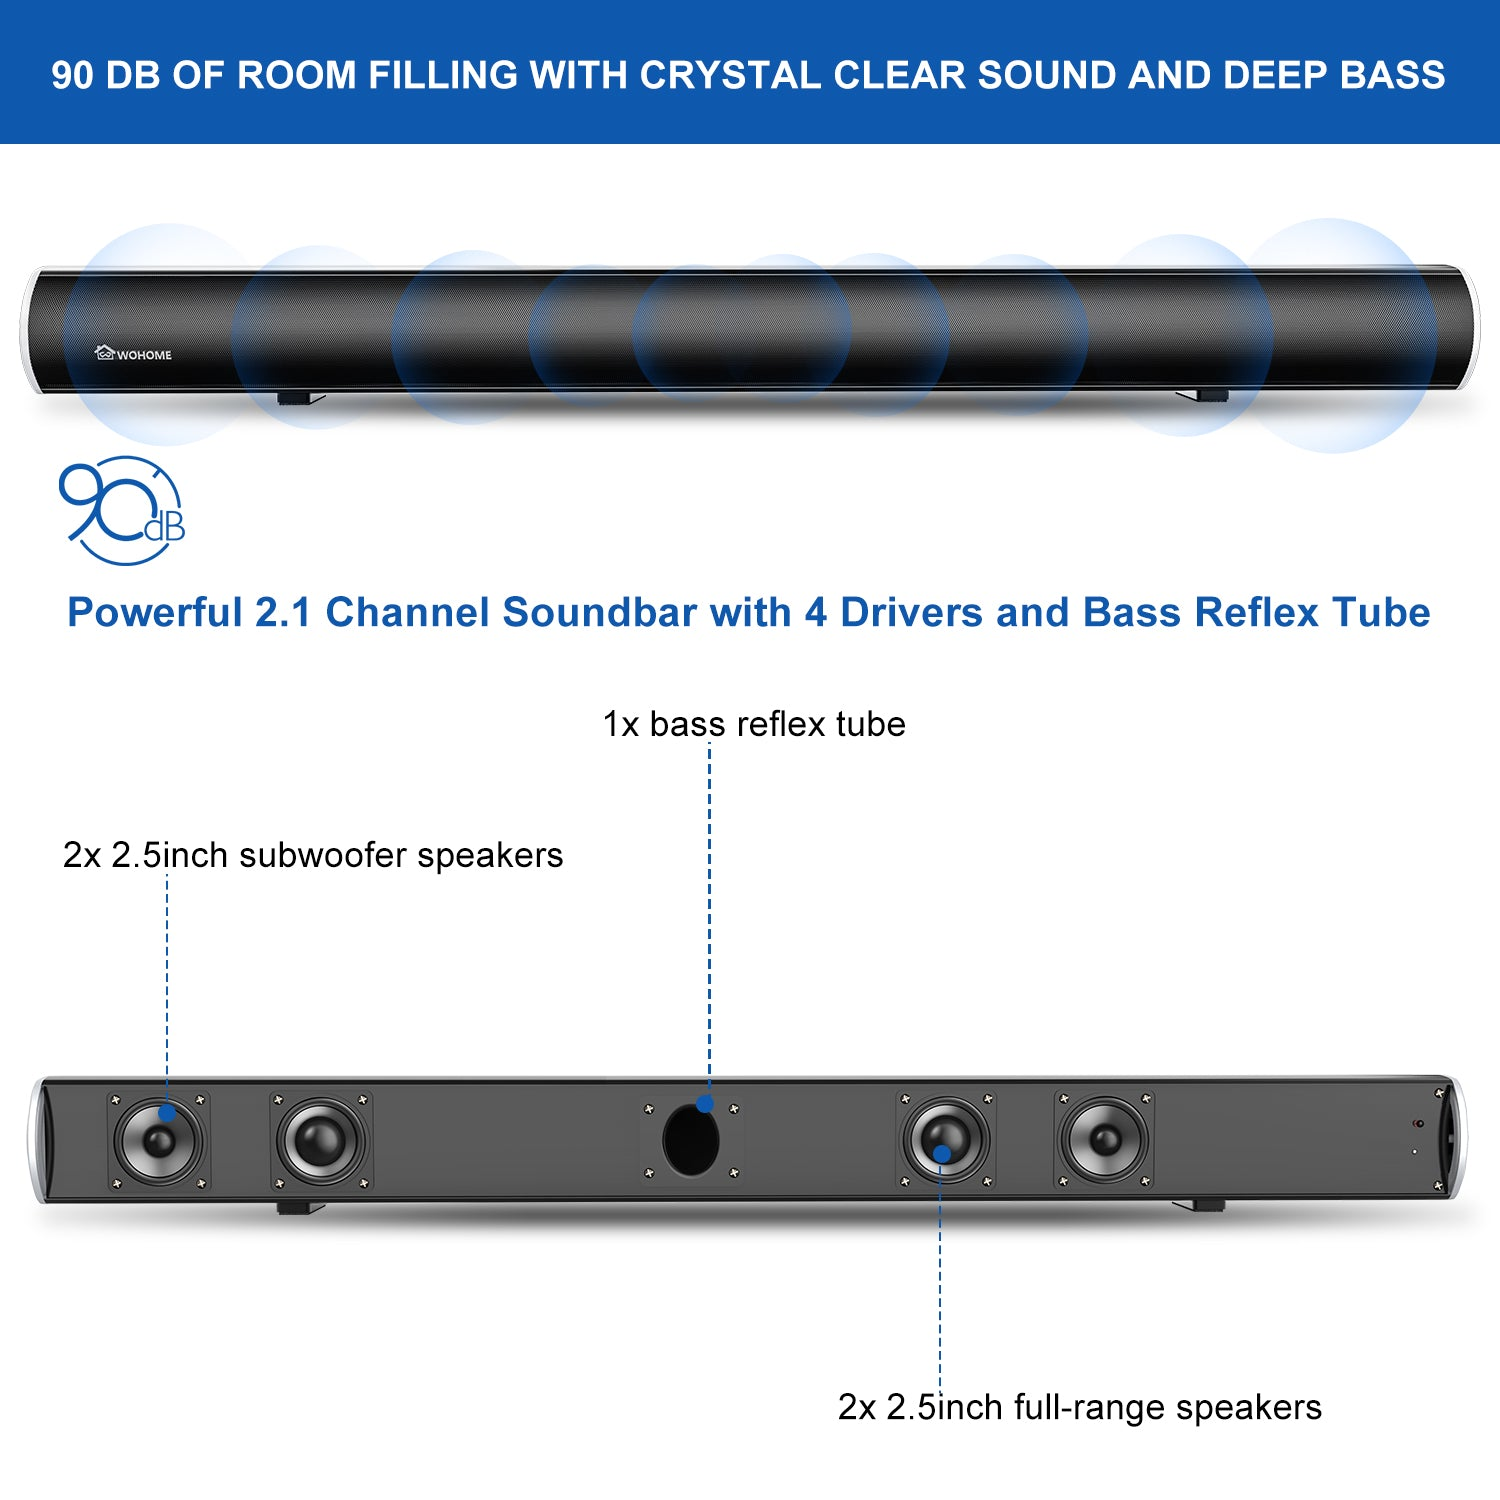 Soundbar Wohome TV Sound Bar 36-Inch with Built-in Subwoofer, 4 Equalizer Modes, Bluetooth 5.0, Remote Control, 4 Speakers, Deep Bass, Optical AUX RCA USB Inputs, Wall mountable, 2020 New Model S09